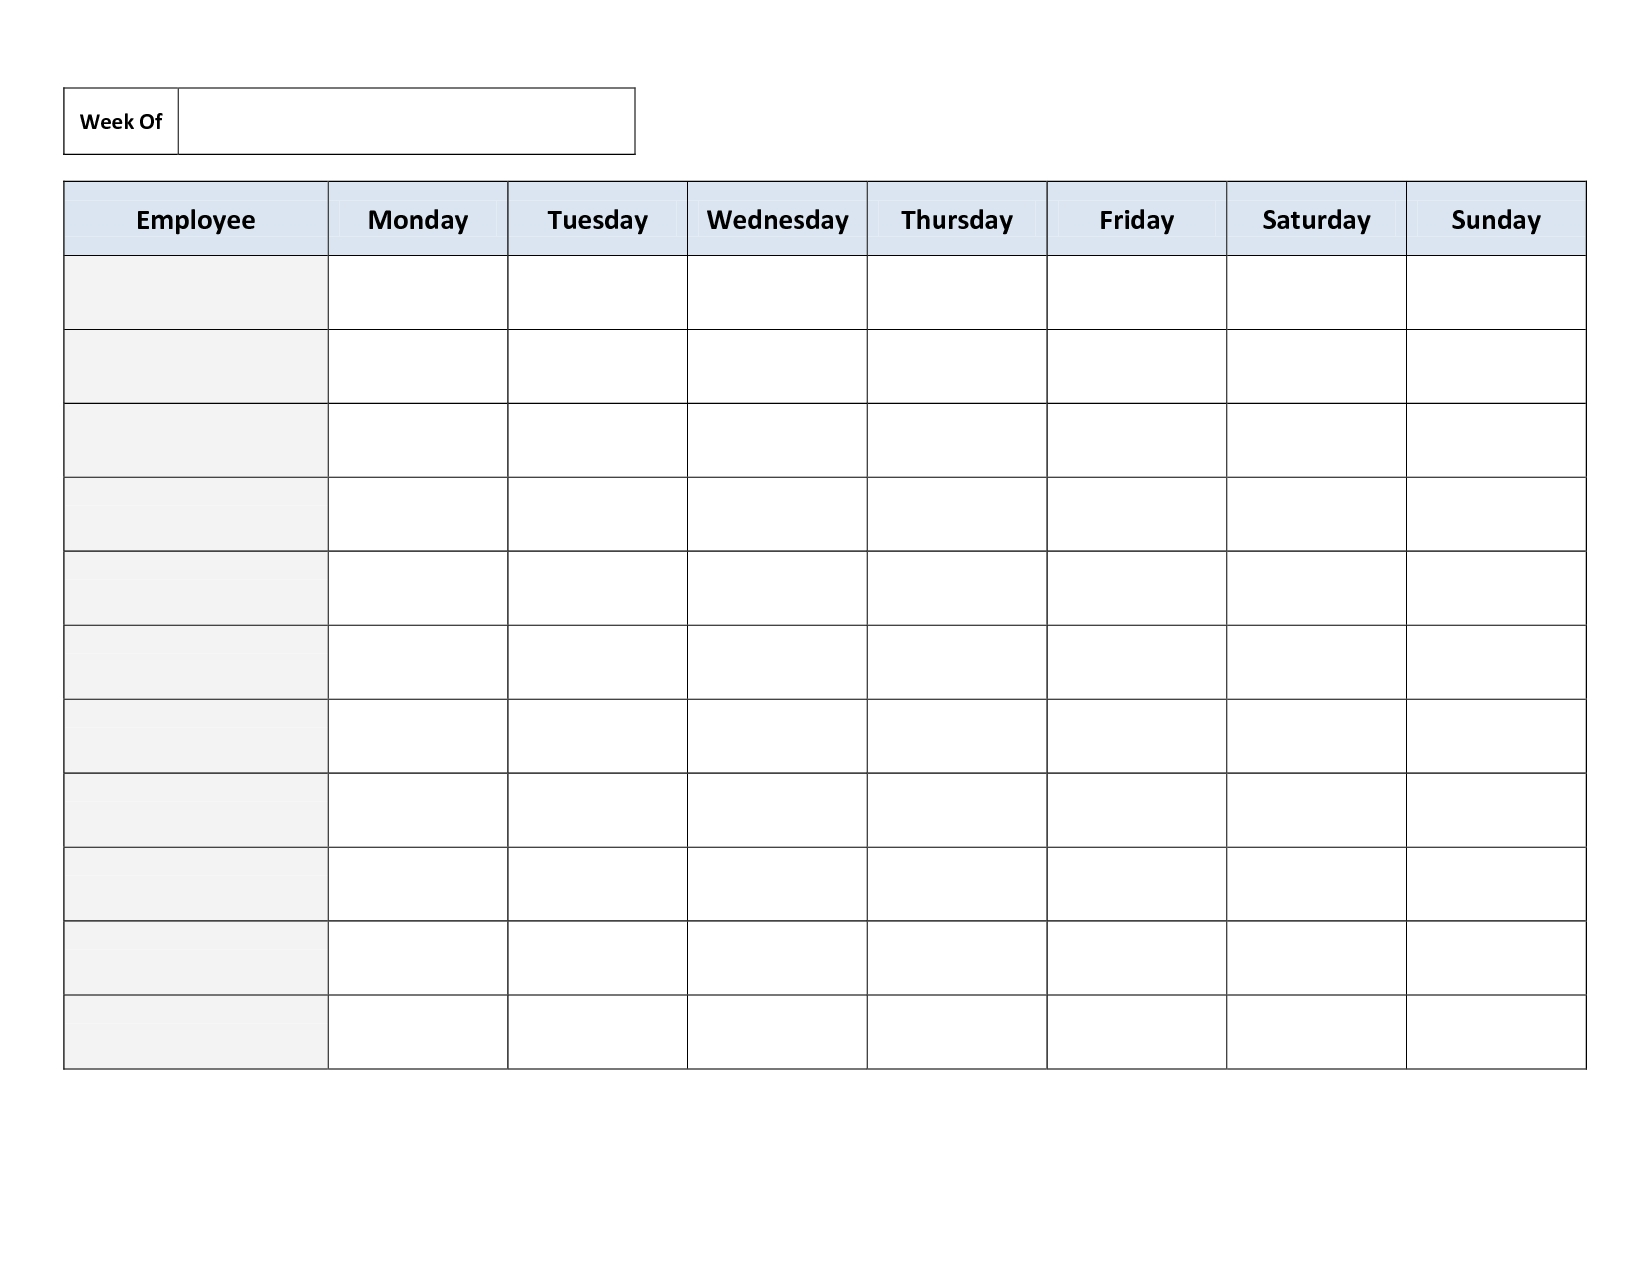 Weekly Employee Work Schedule Template. Free Blank Schedule-Monthly Calendar Sign-Up Sheet